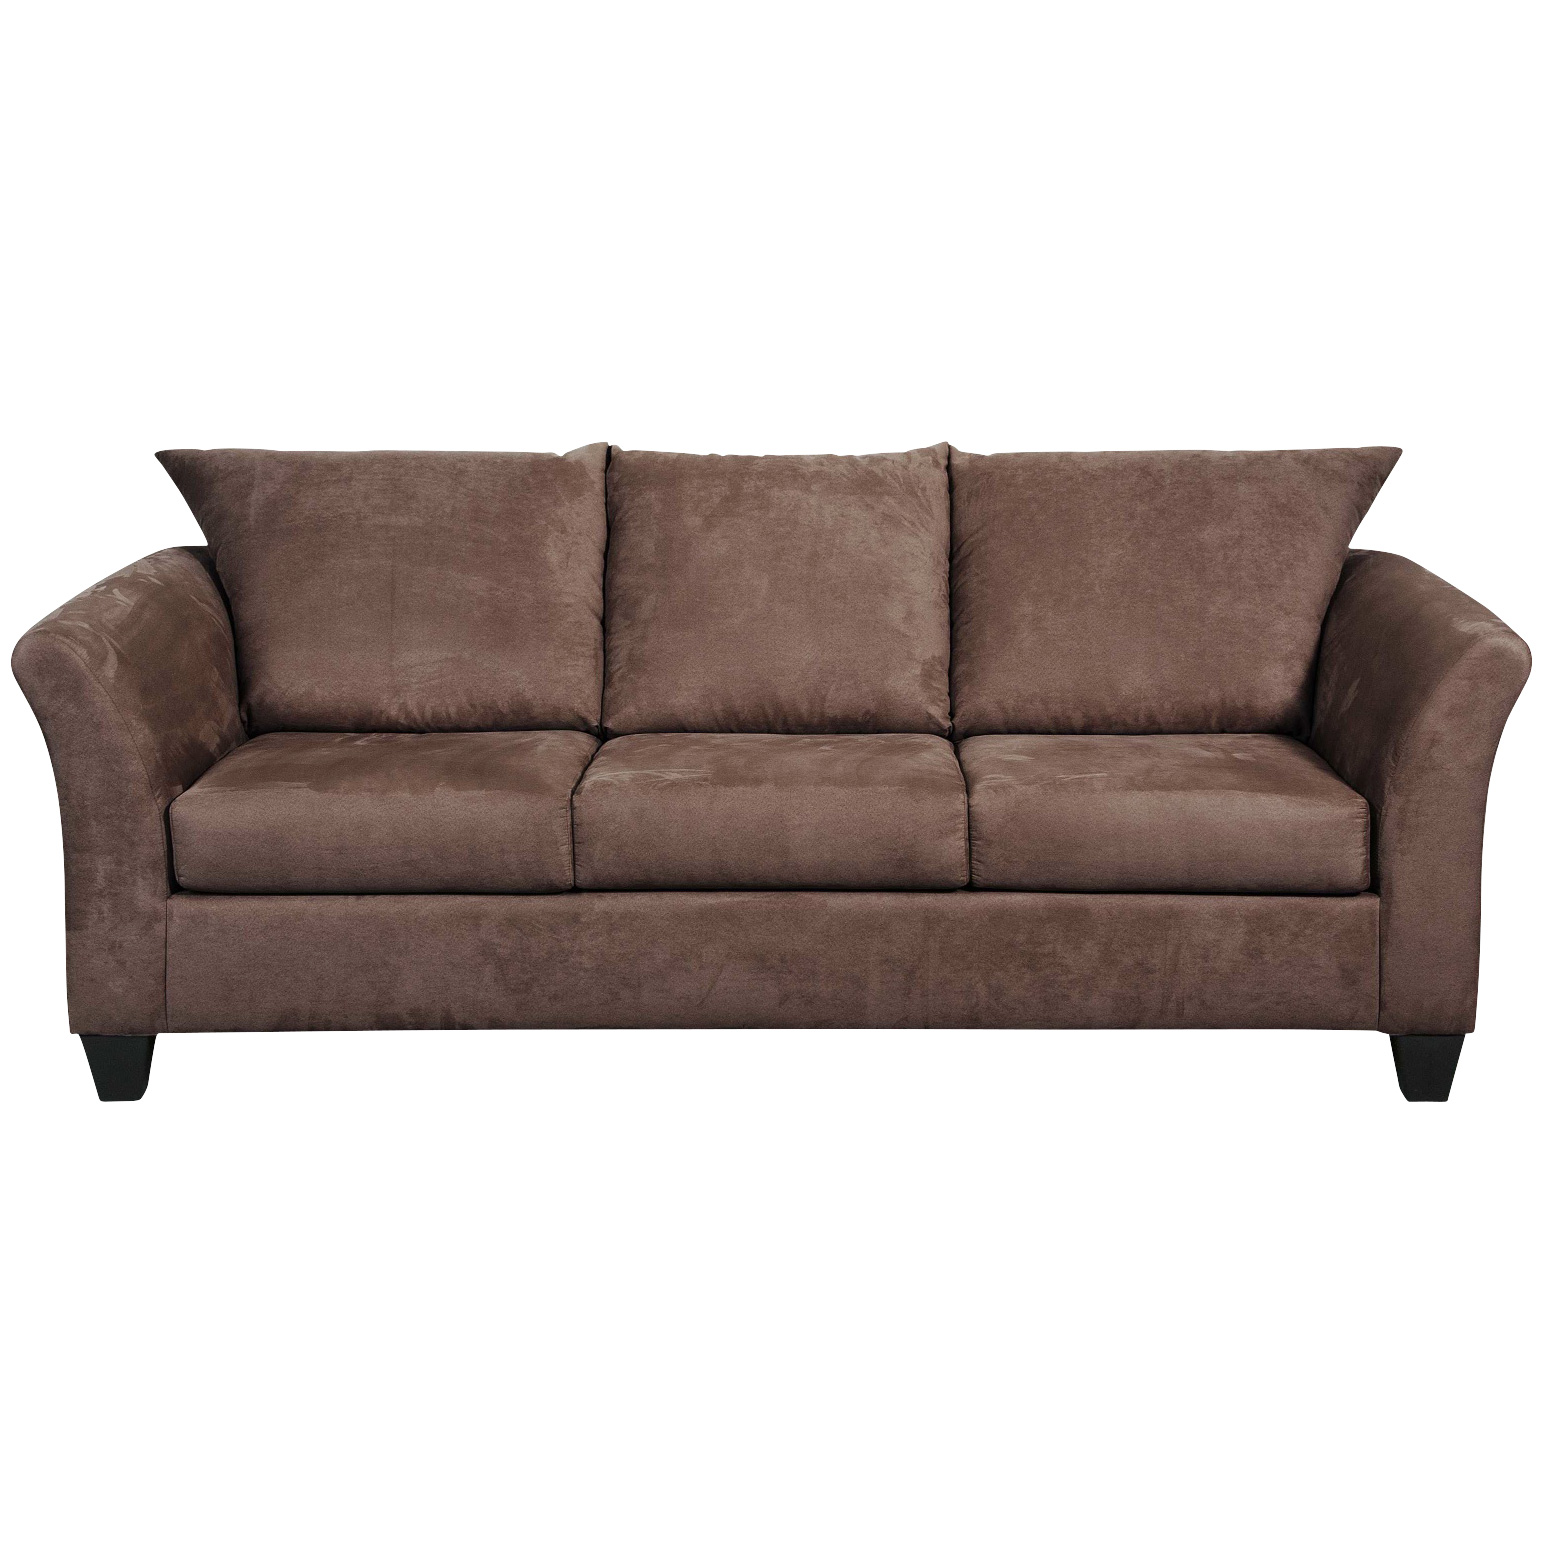 Serta Upholstery By Hughes Furniture | Buster Chocolate Sofa